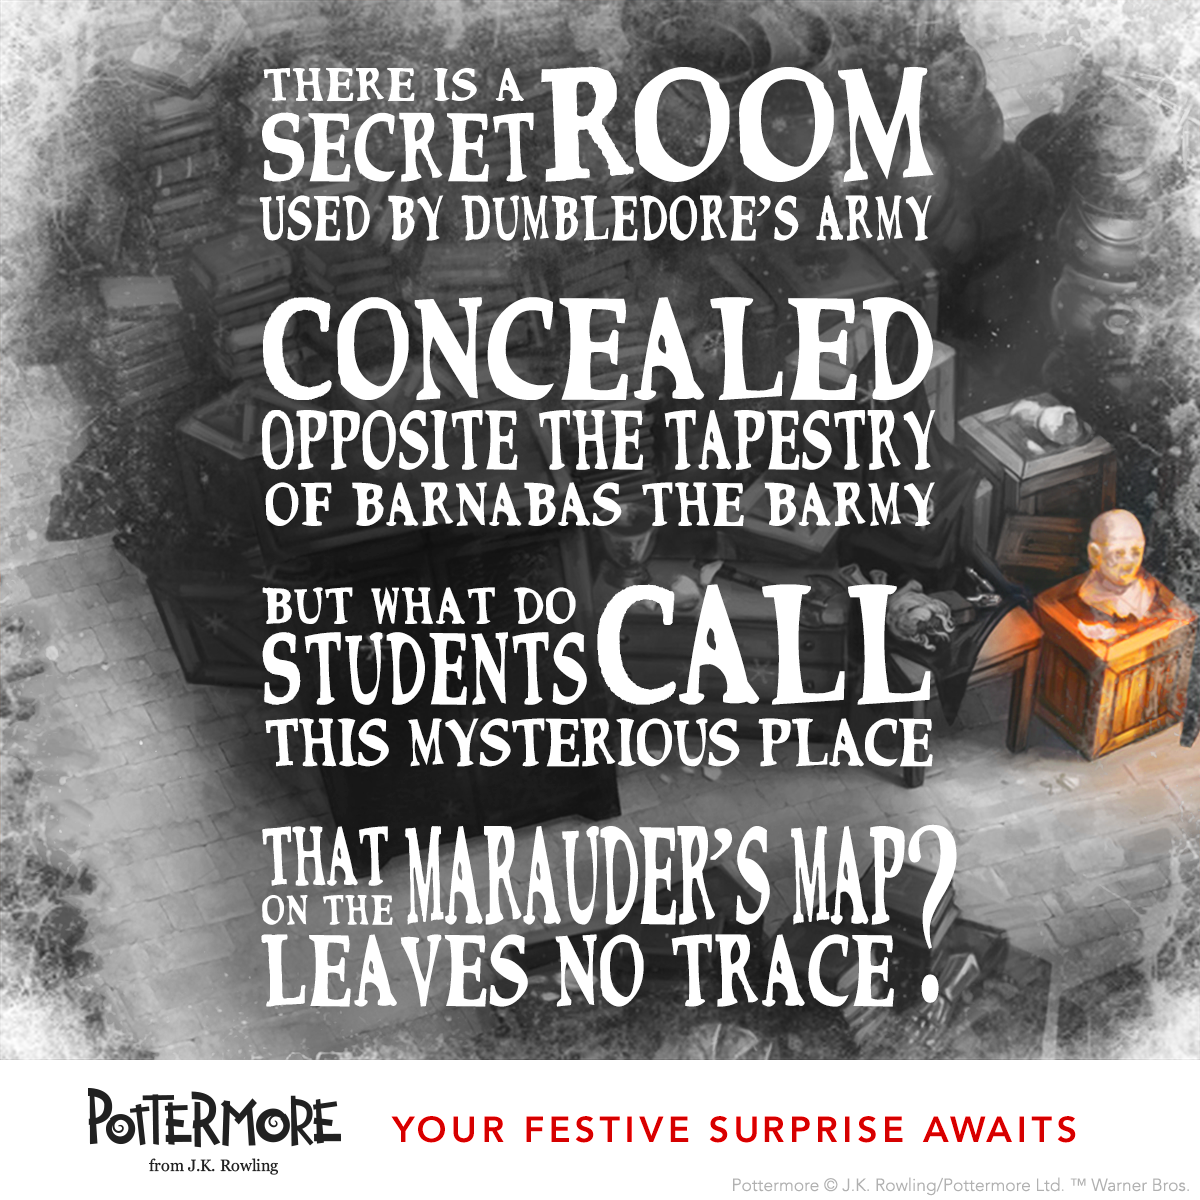 Day 9 of J.K. Rowling's Twelve Days of Christmas Harry Potter Moments